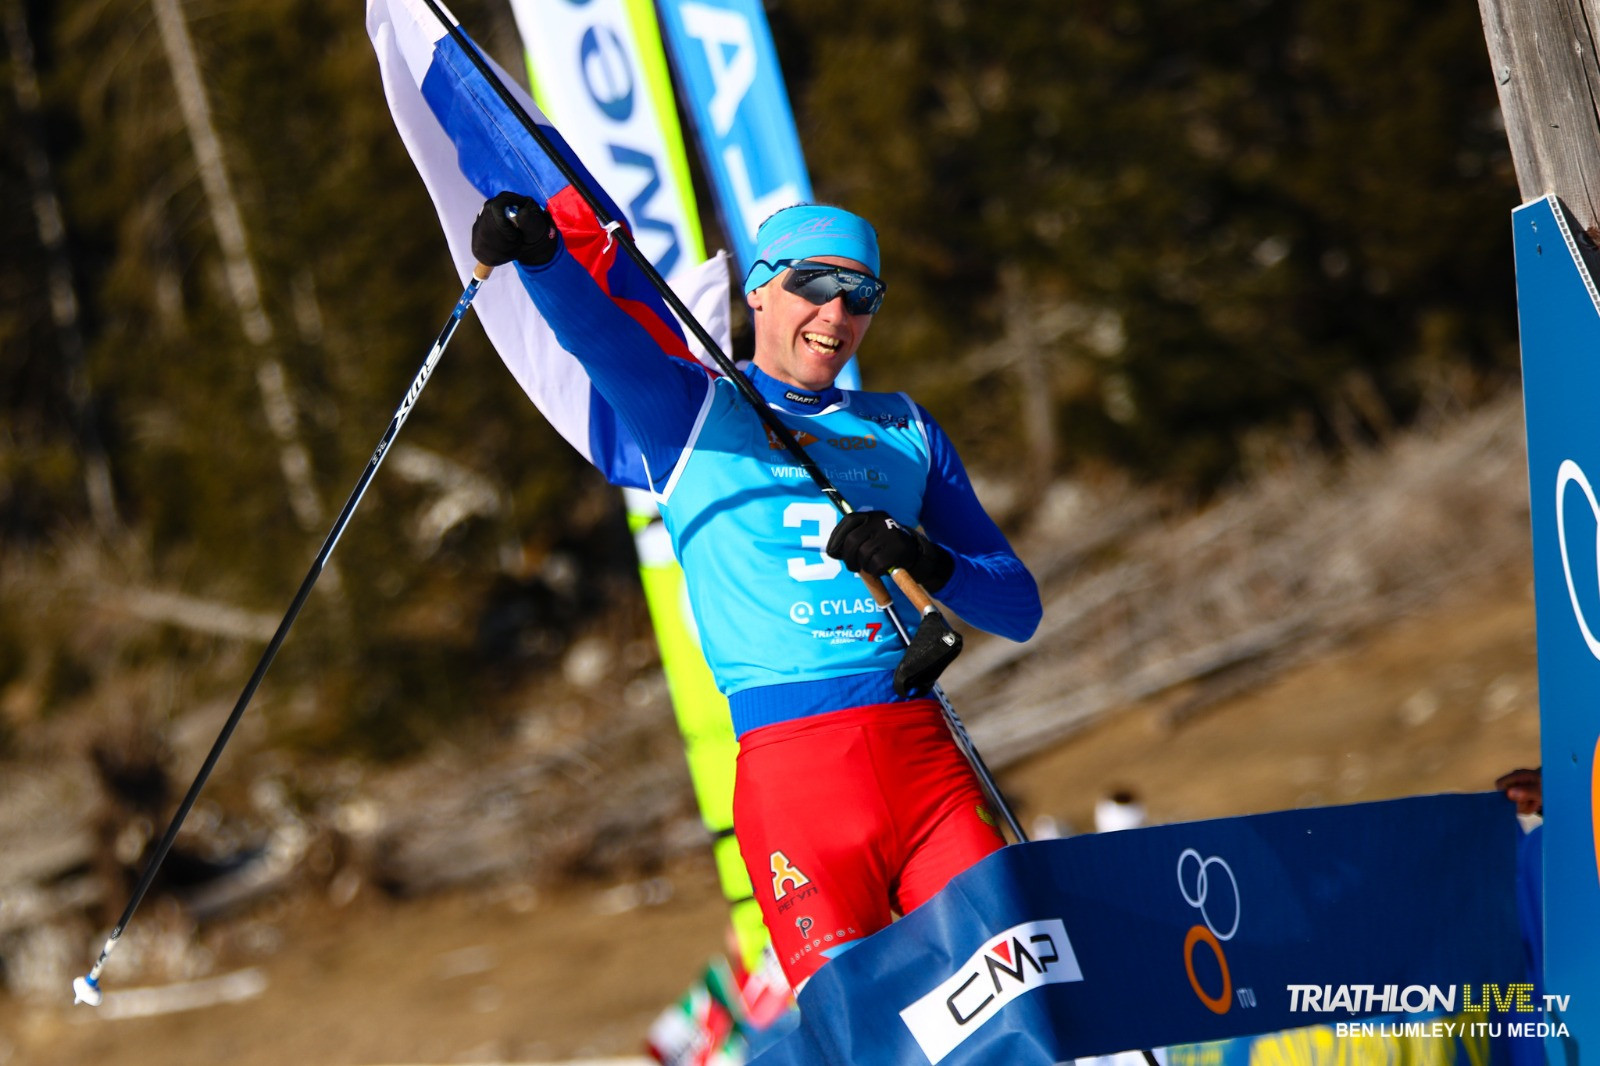 Russia dominate ITU Winter Triathlon World Championships